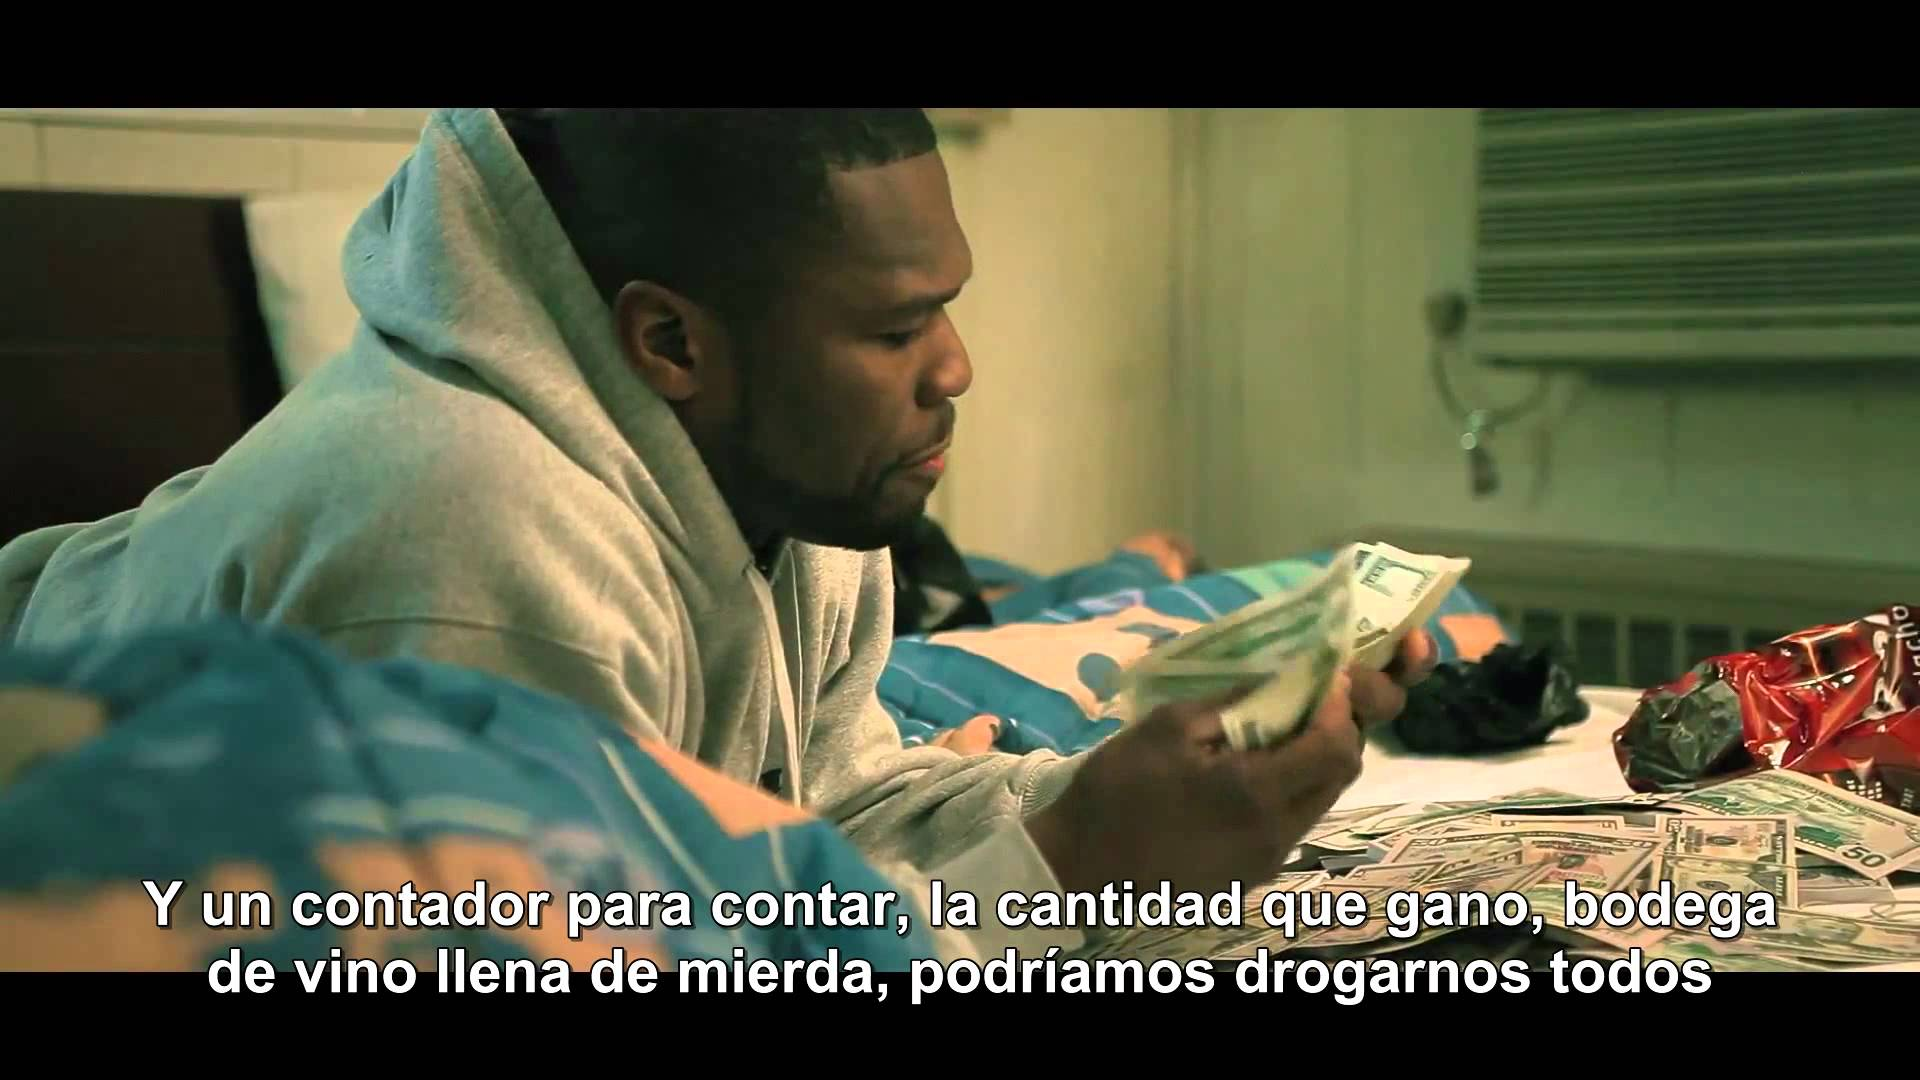 50 Cent Money Sub Español